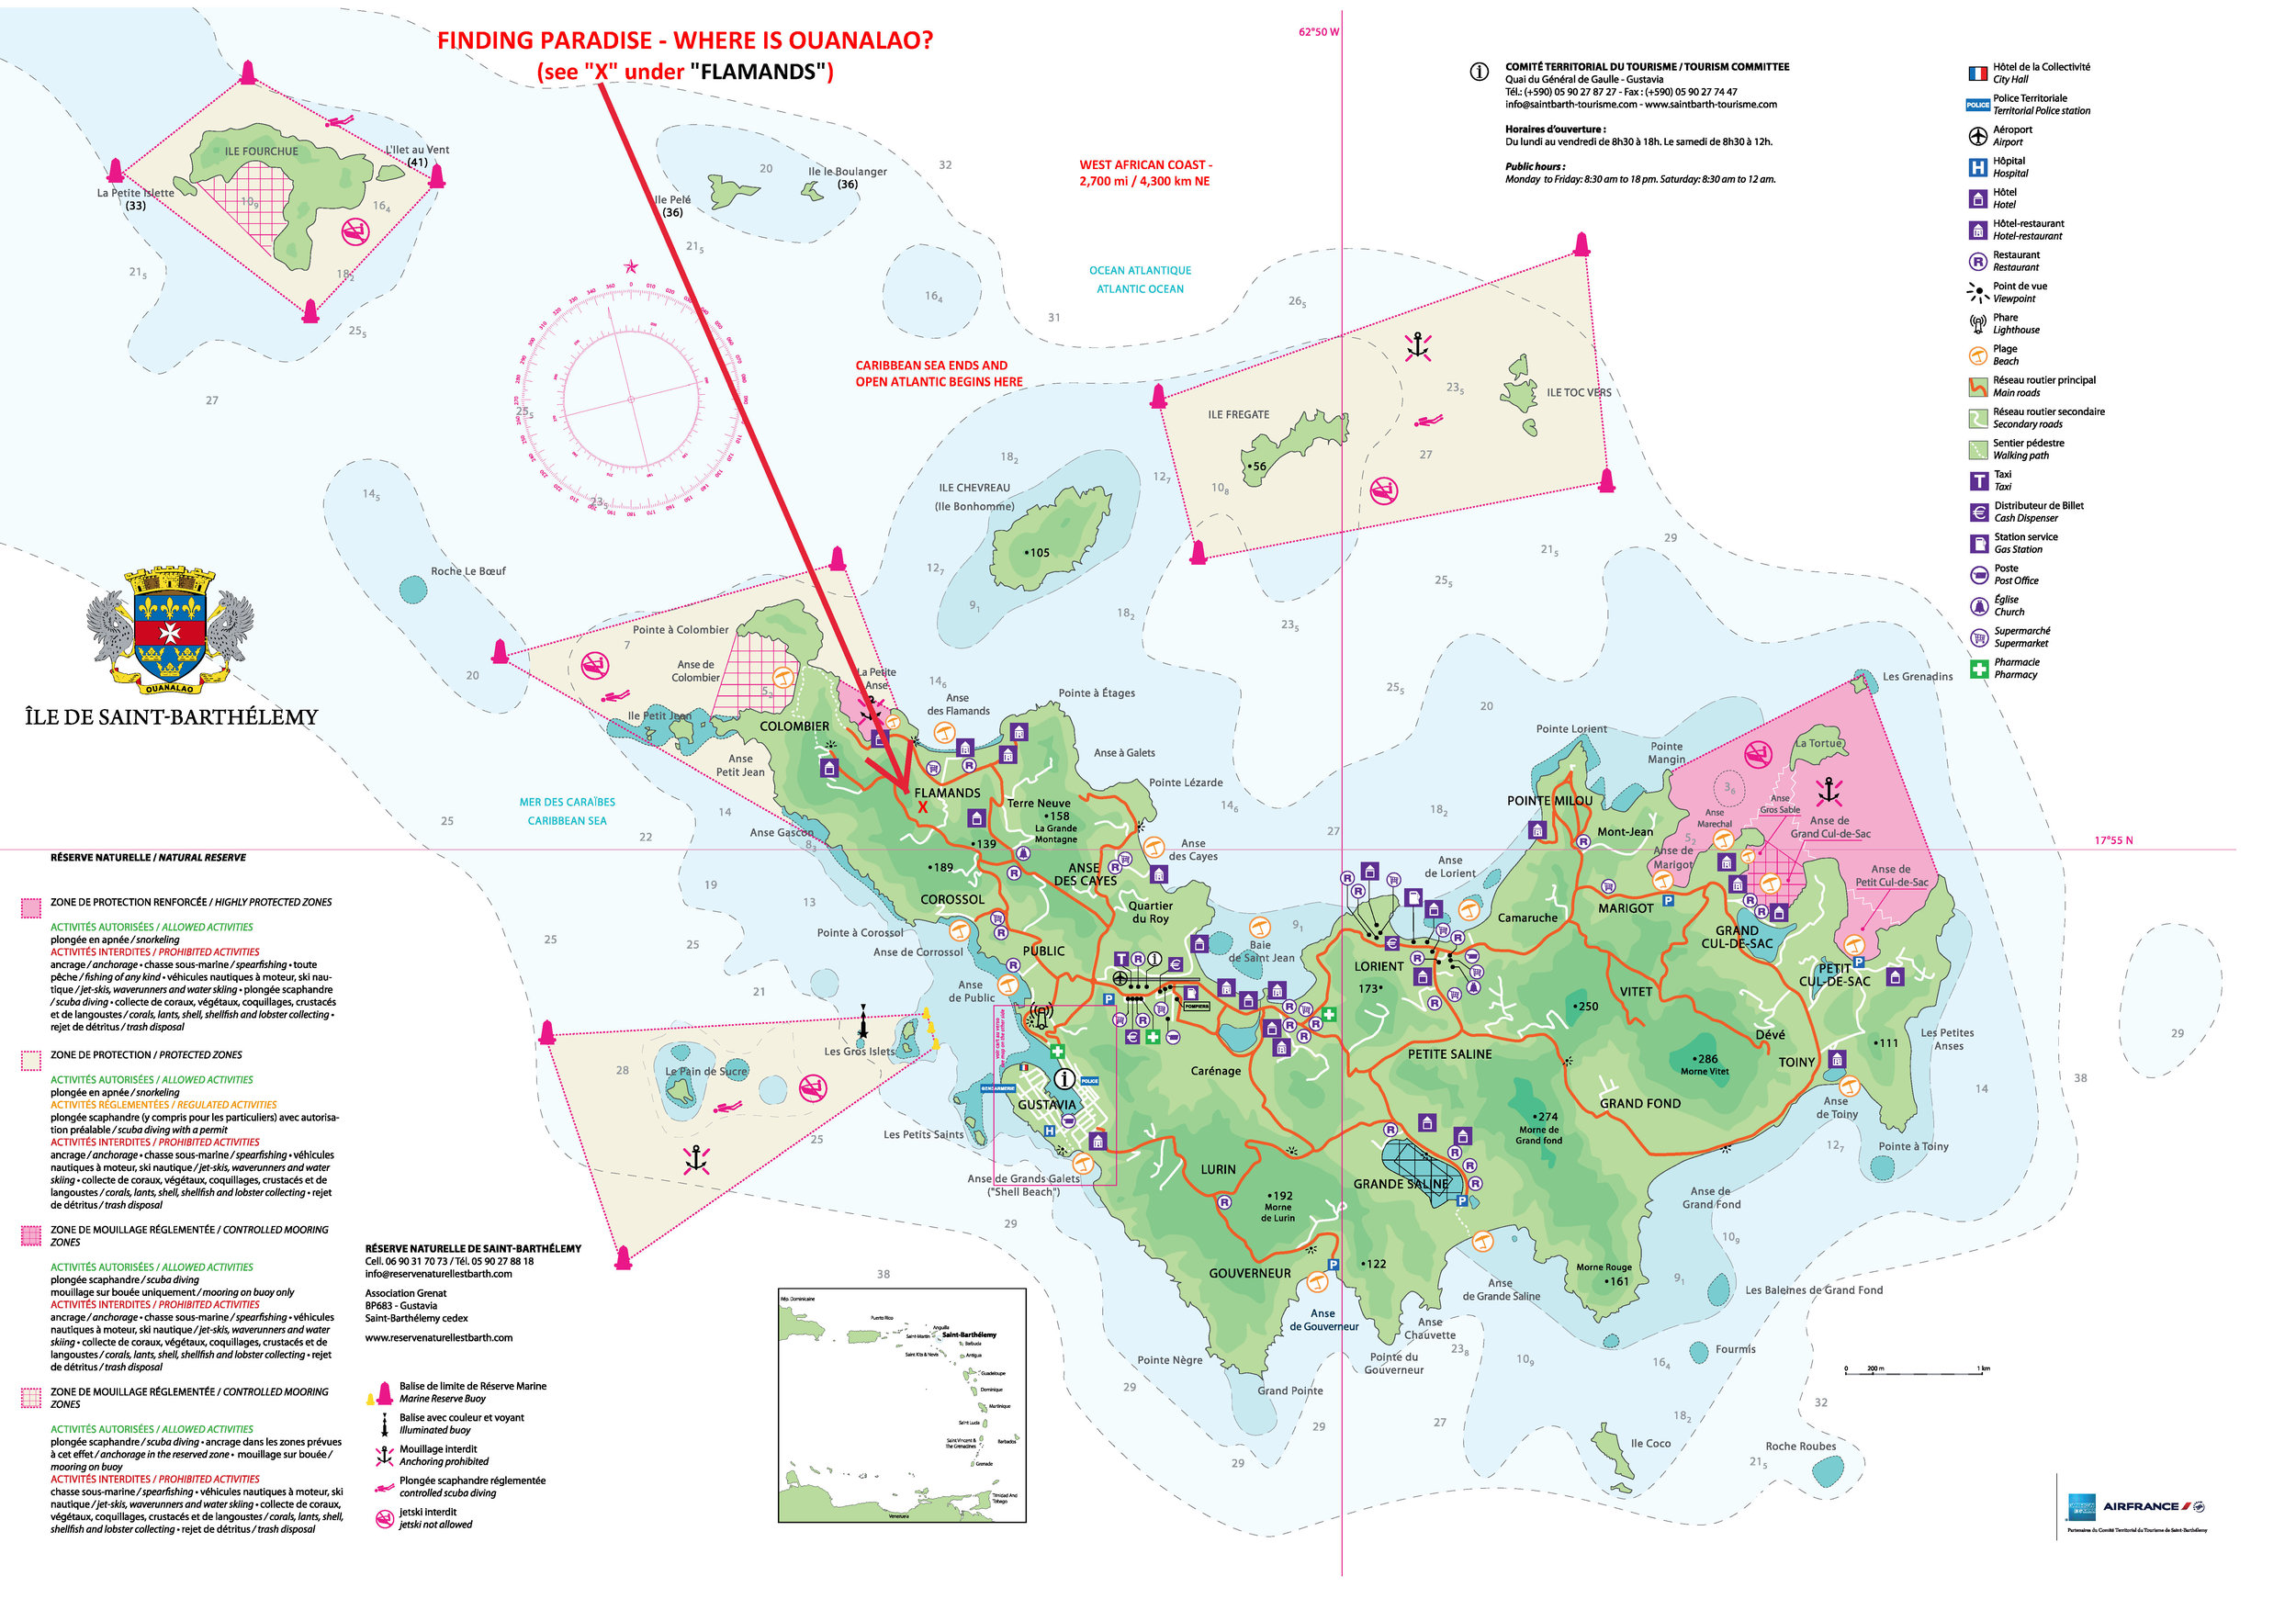 Map - Finding Paradise - Where is Ouanalao?